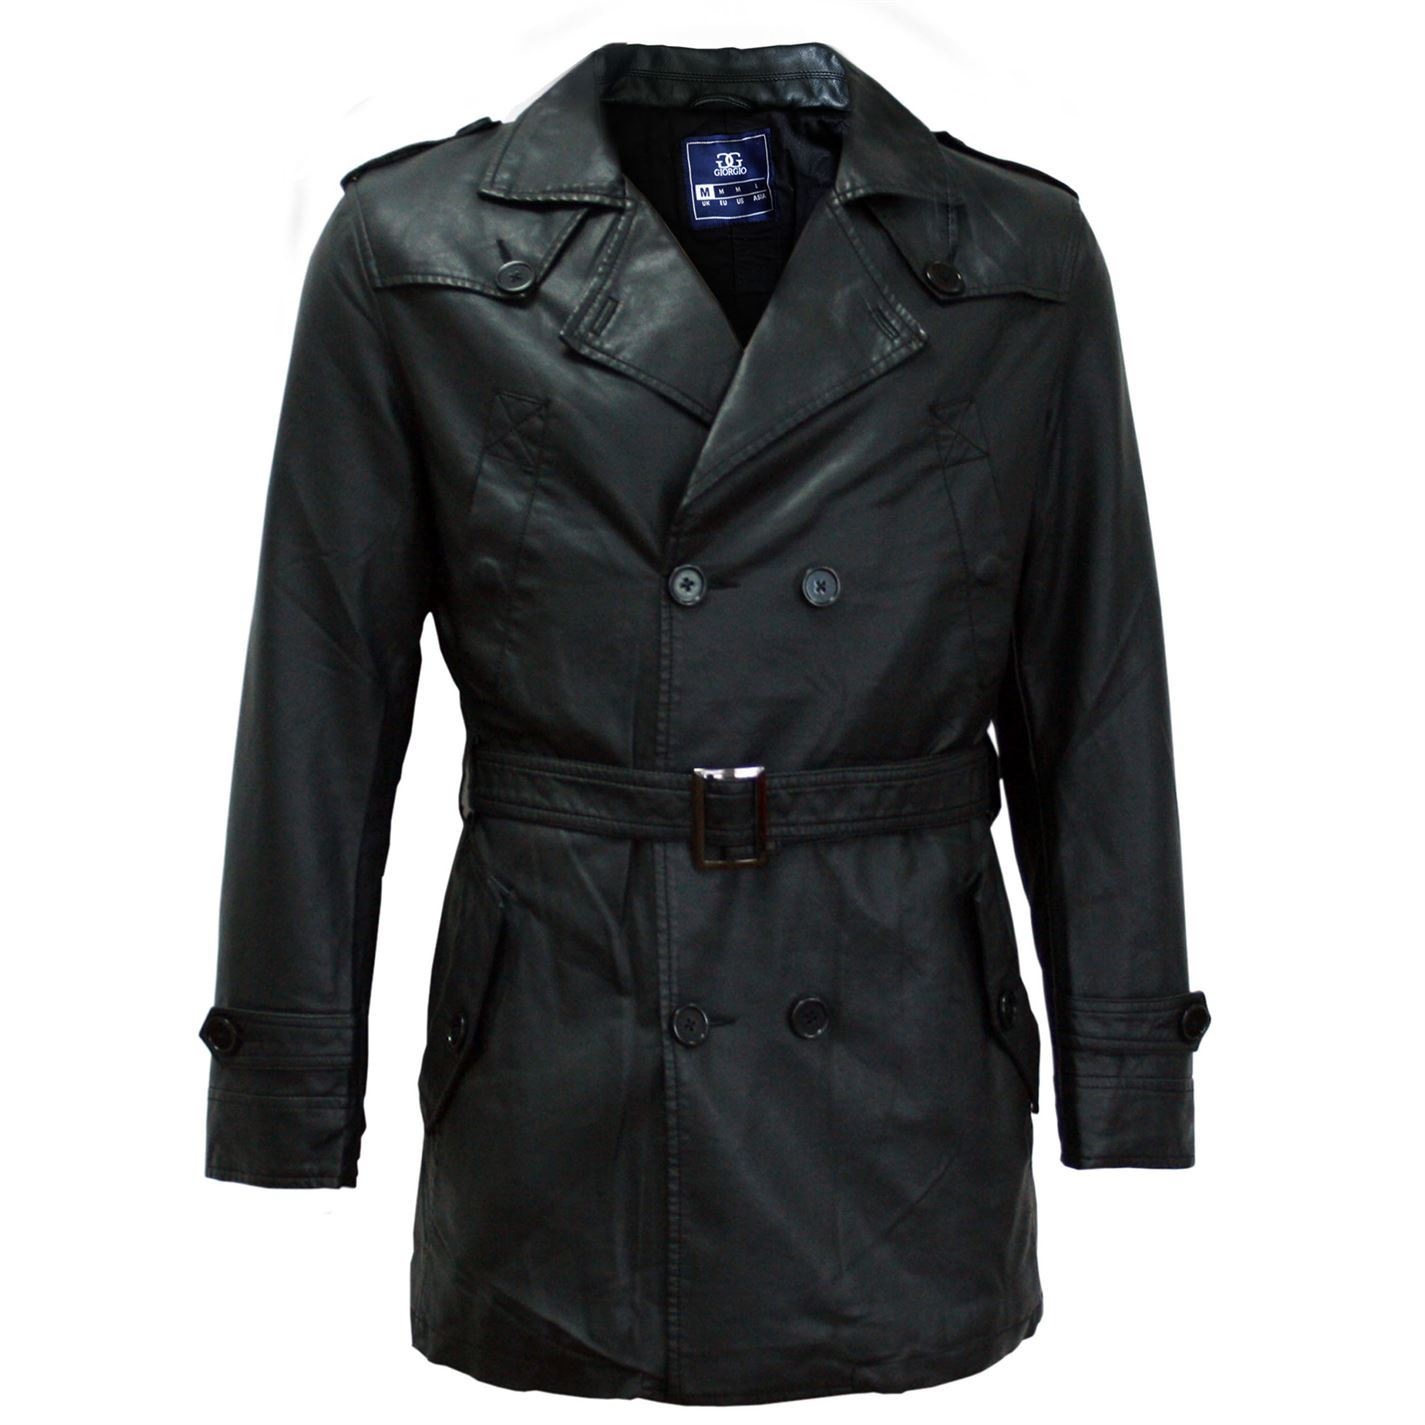 893cf2bf2c Details about Giorgio Mens Trench Coat Mac Top Jacket Press Stud Fastening  Epaulette